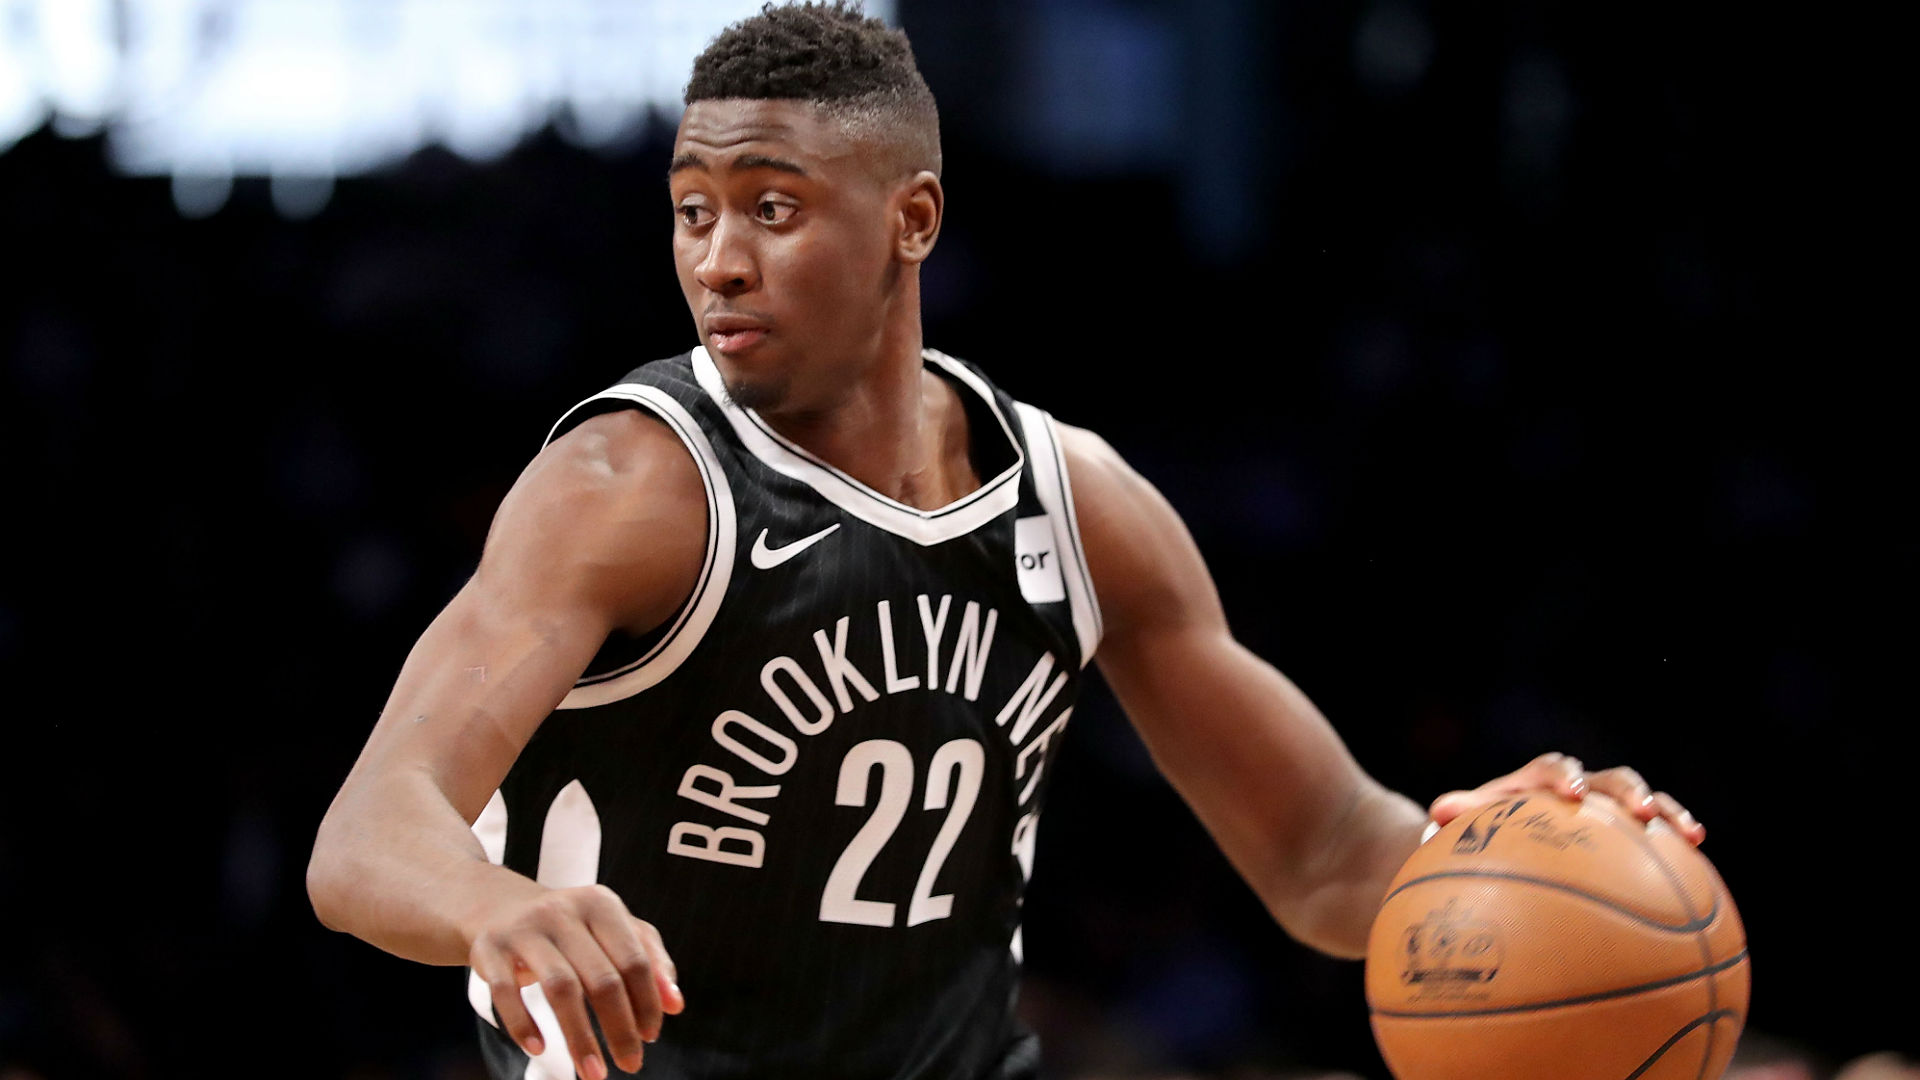 Caris LeVert sustains gruesome injury, National Basketball Association community reacts